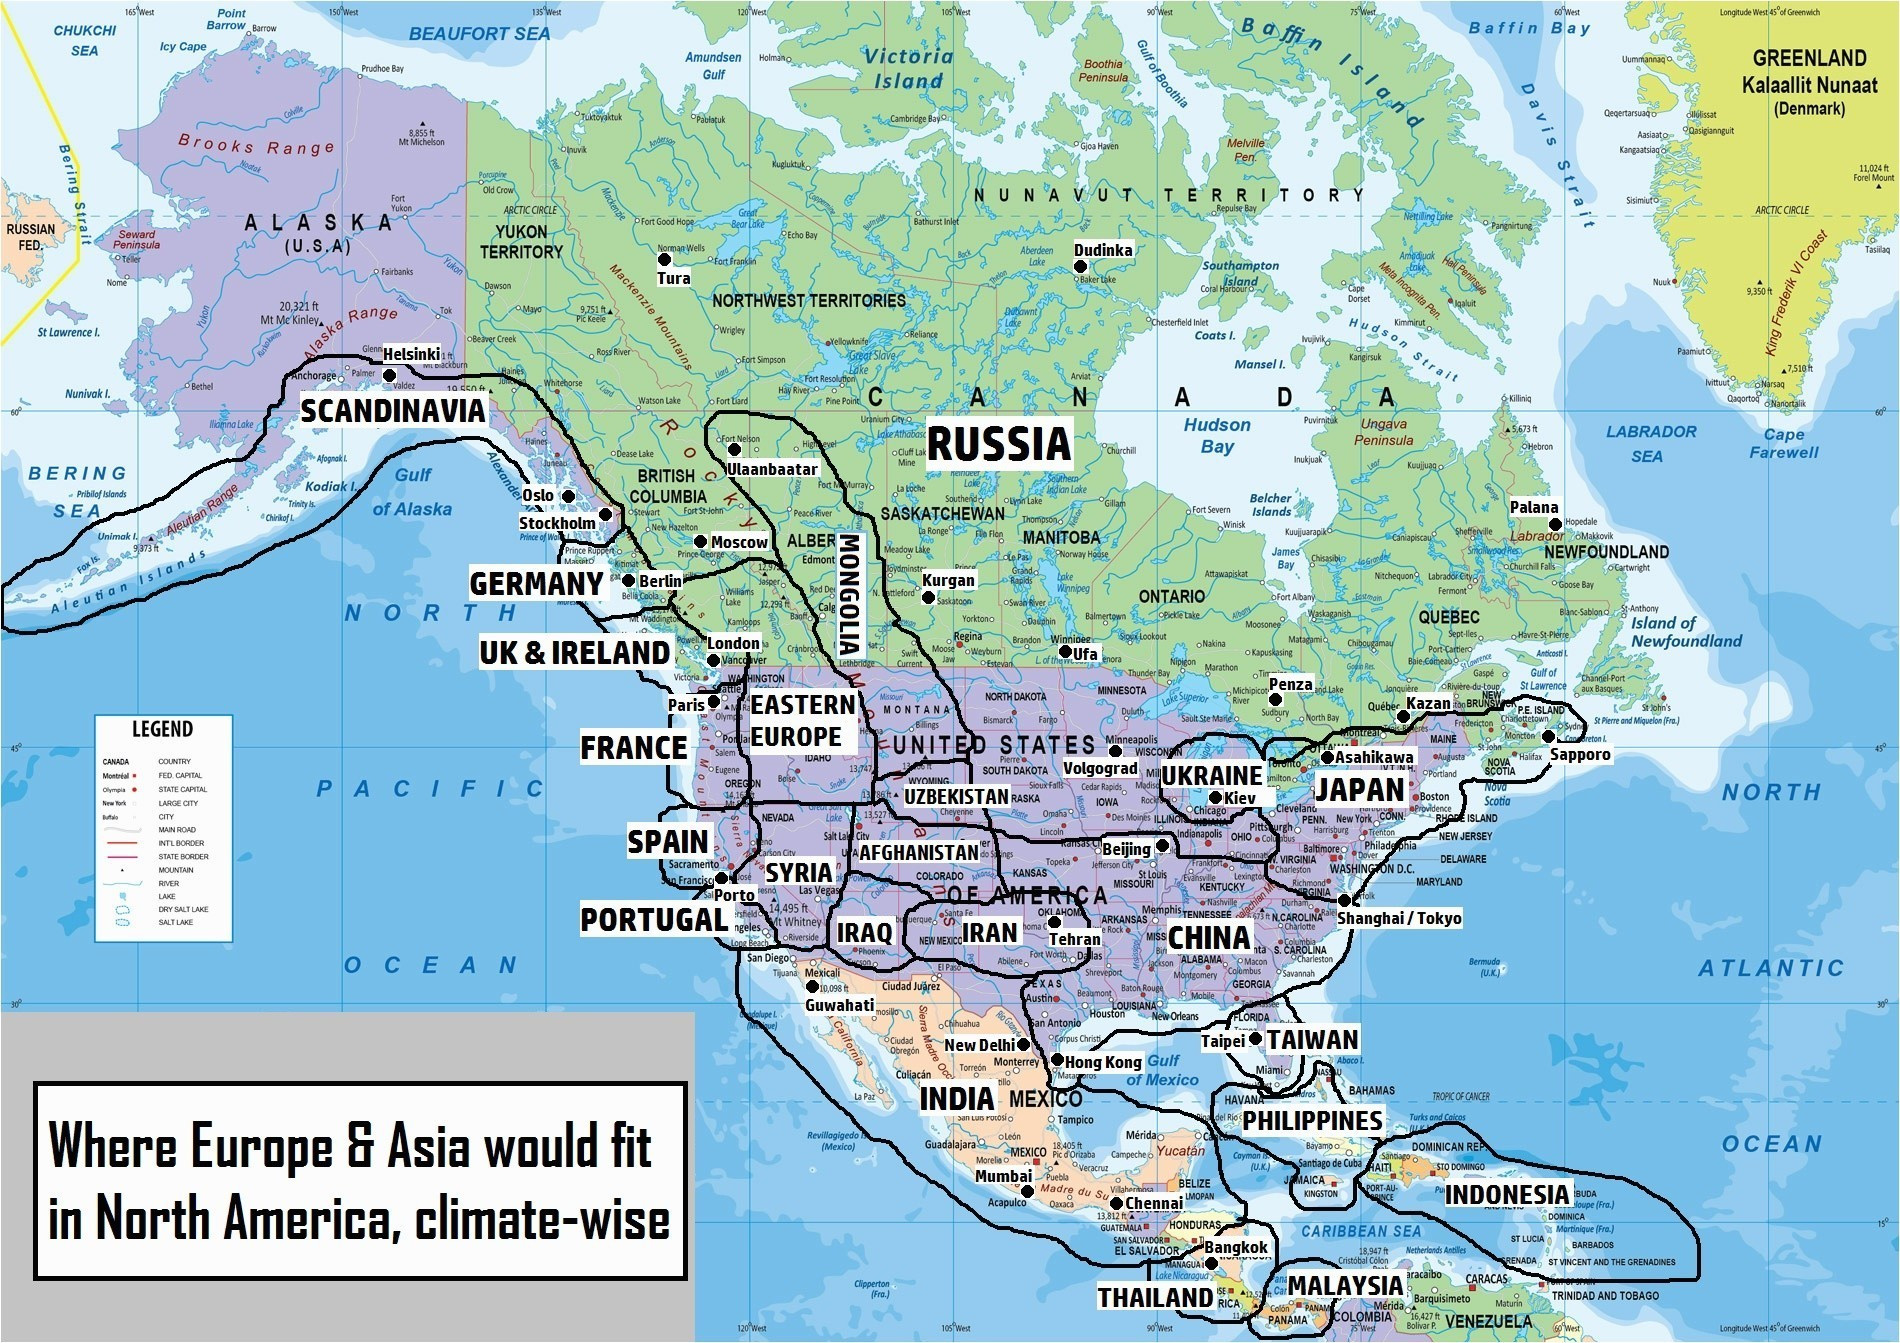 Usa Map by Time Zone Save Blank Us Map with Key New Us Canada Map New